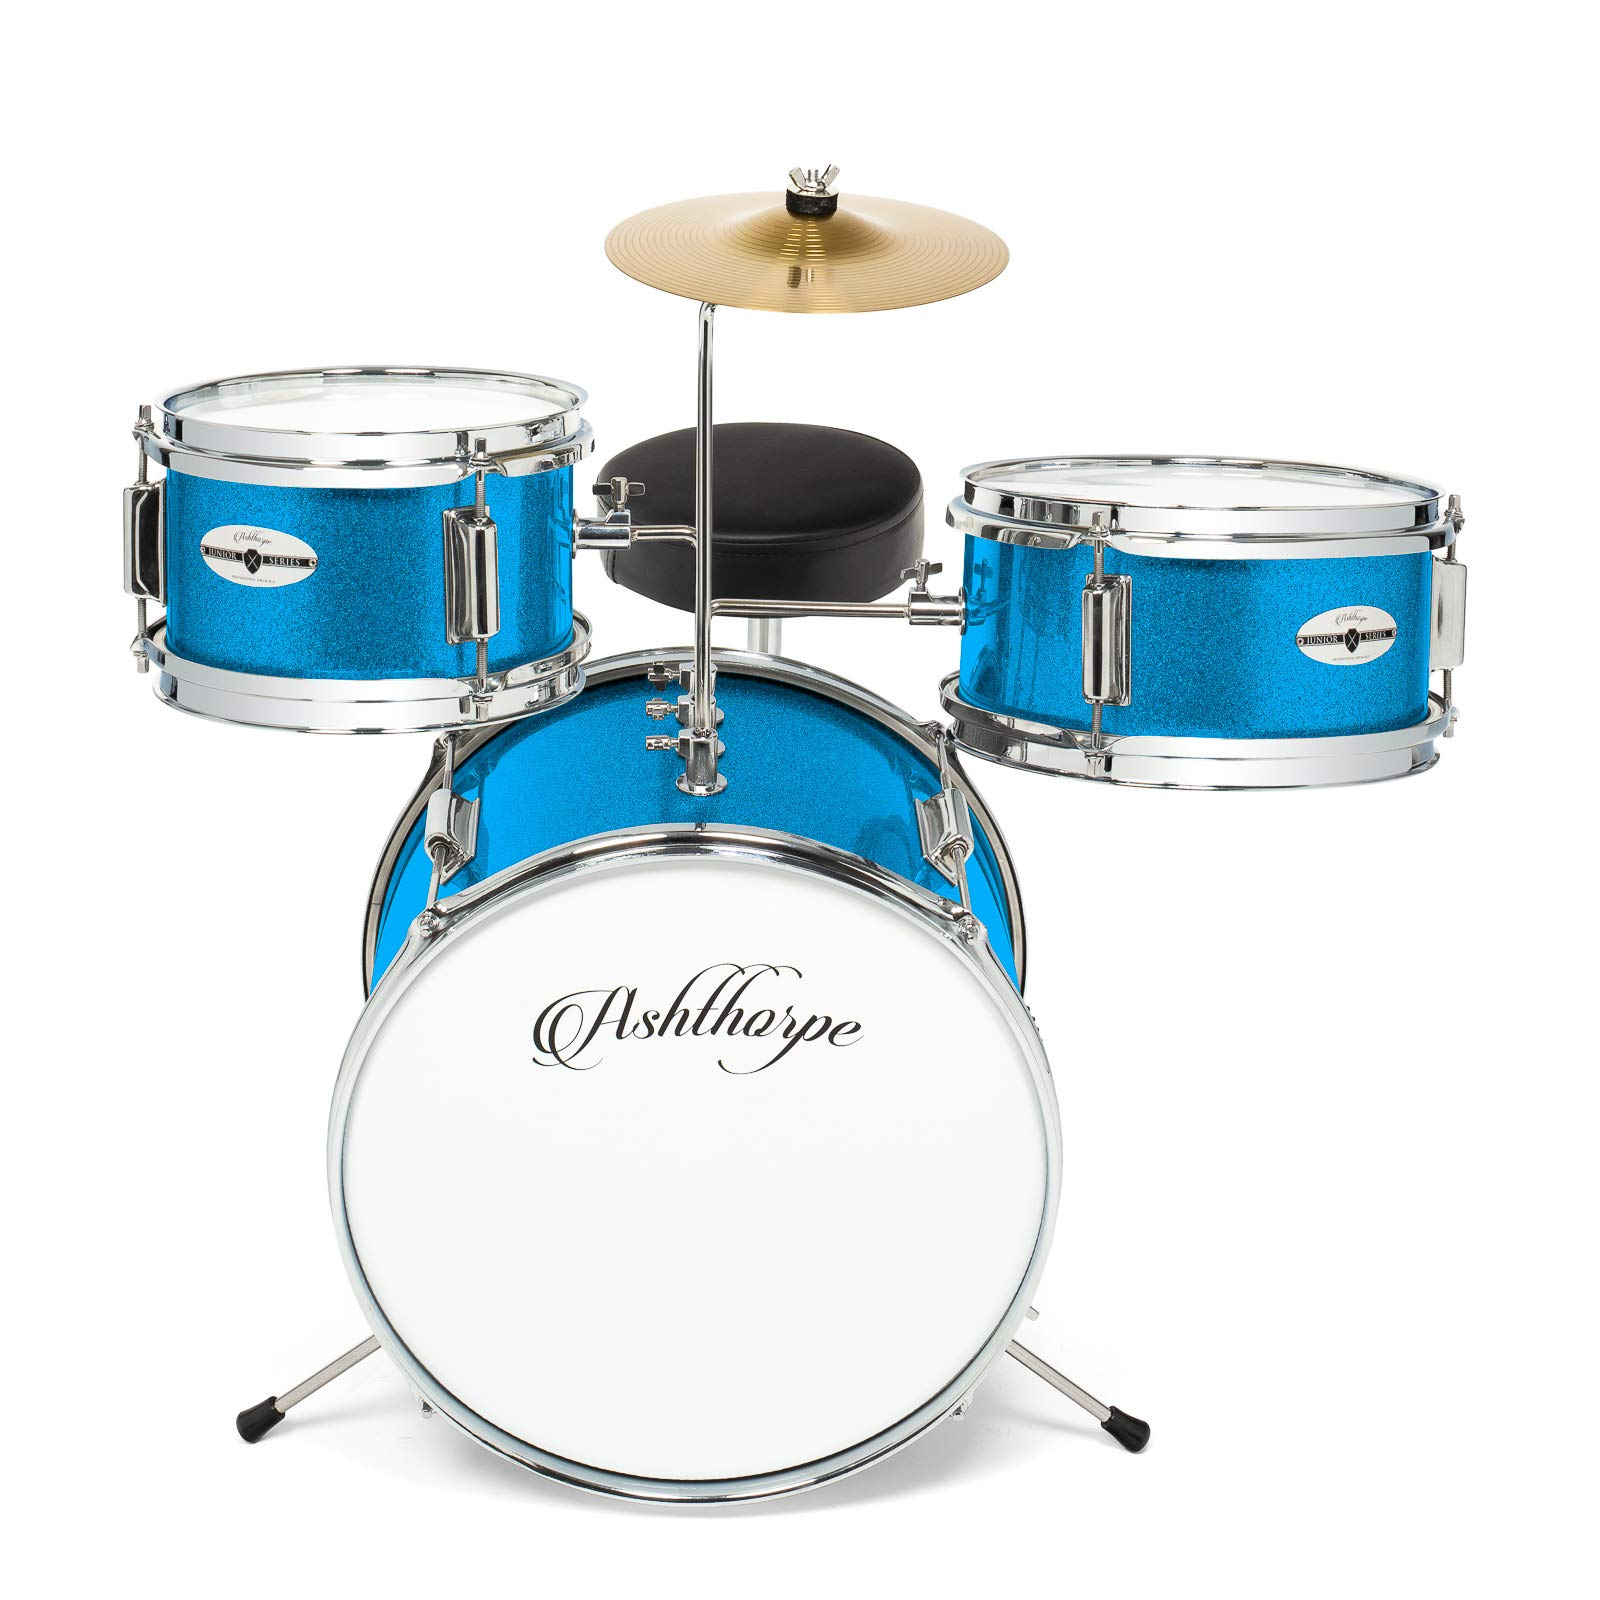 Ashthorpe 3-Piece Complete Kid's Junior Drum Set - Children's Beginner Kit with 14'' Bass, Adjustable Throne, Cymbal, Pedal & Drumsticks - Blue by Ashthorpe (Image #2)